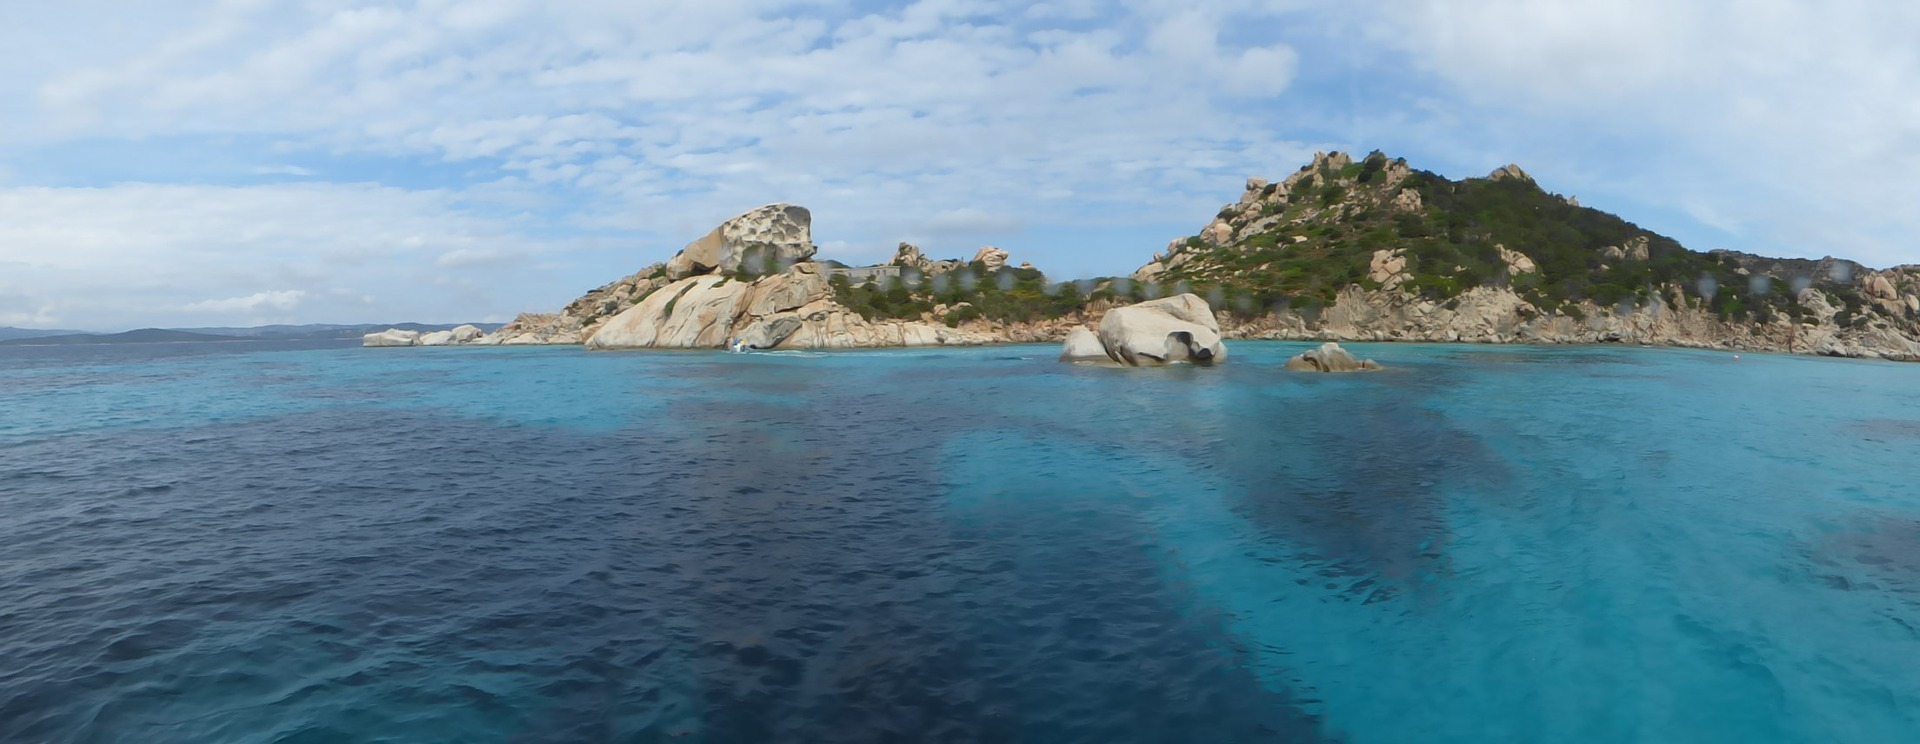 La Maddalena Nationalpark